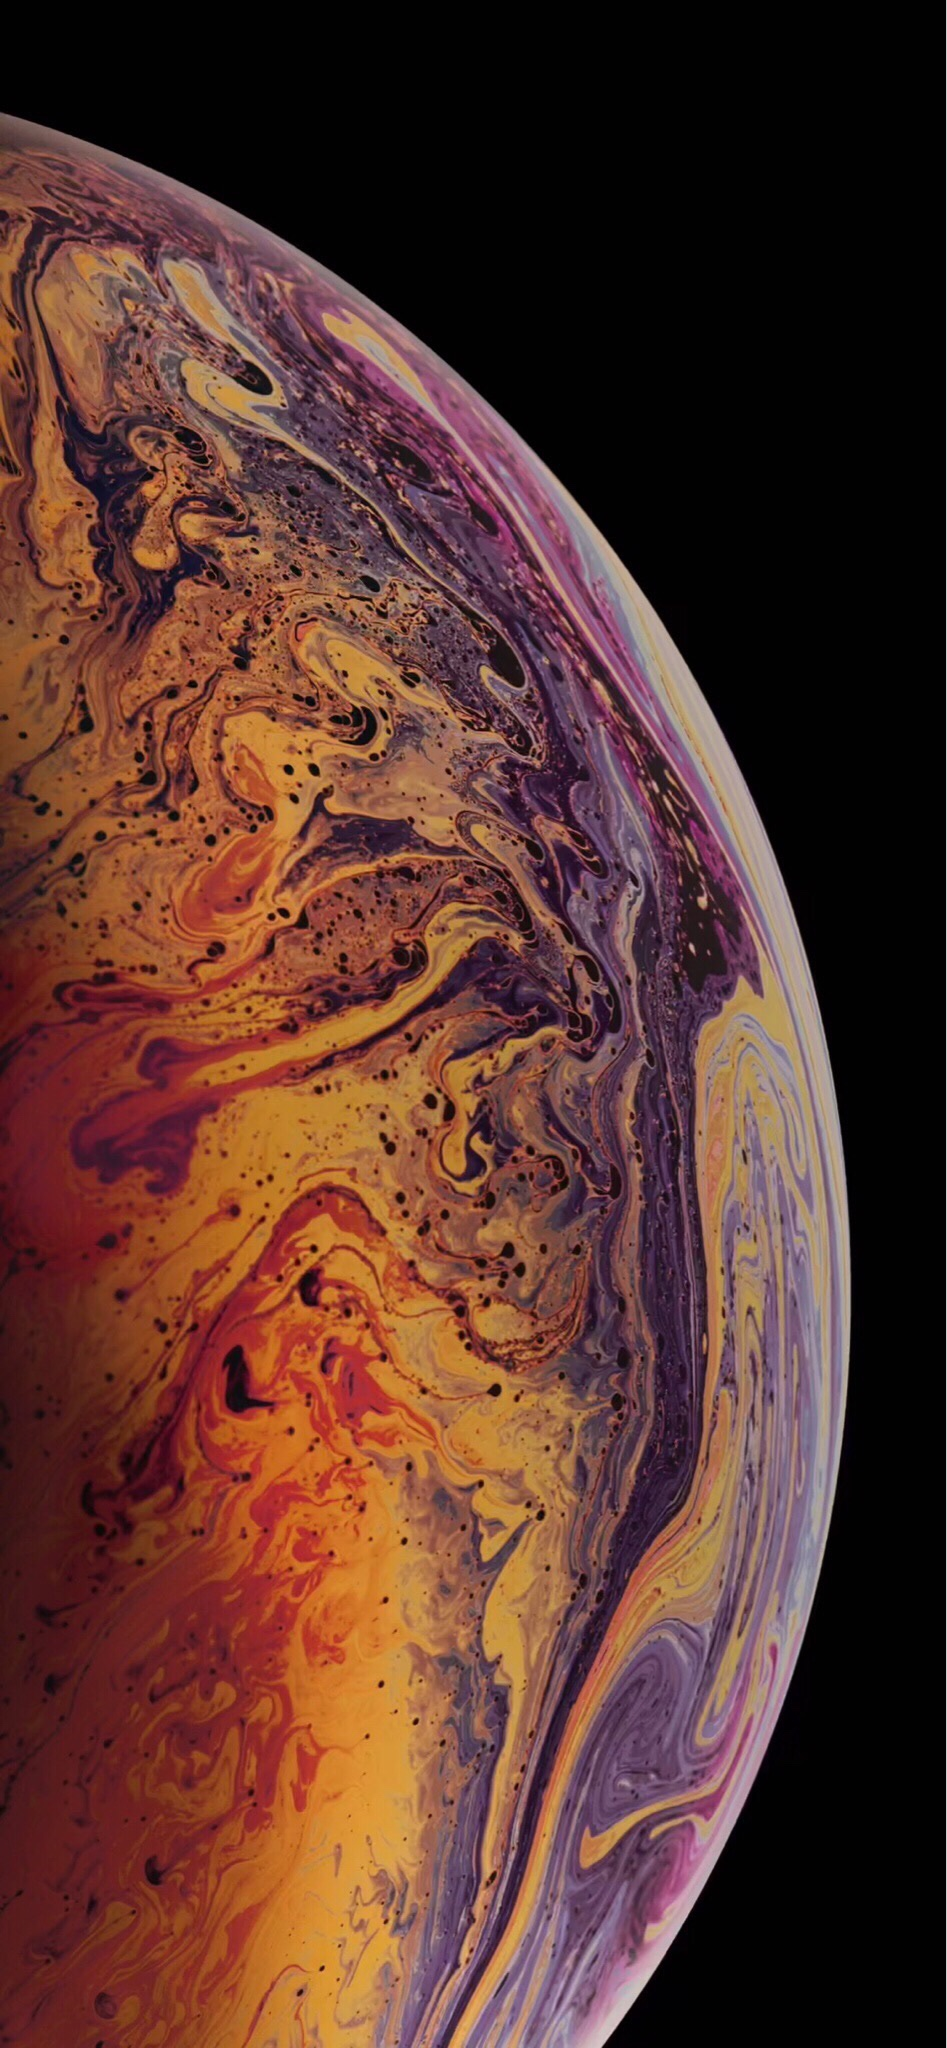 The Iphone X Xs Wallpaper Thread Page 66 Iphone Ipad